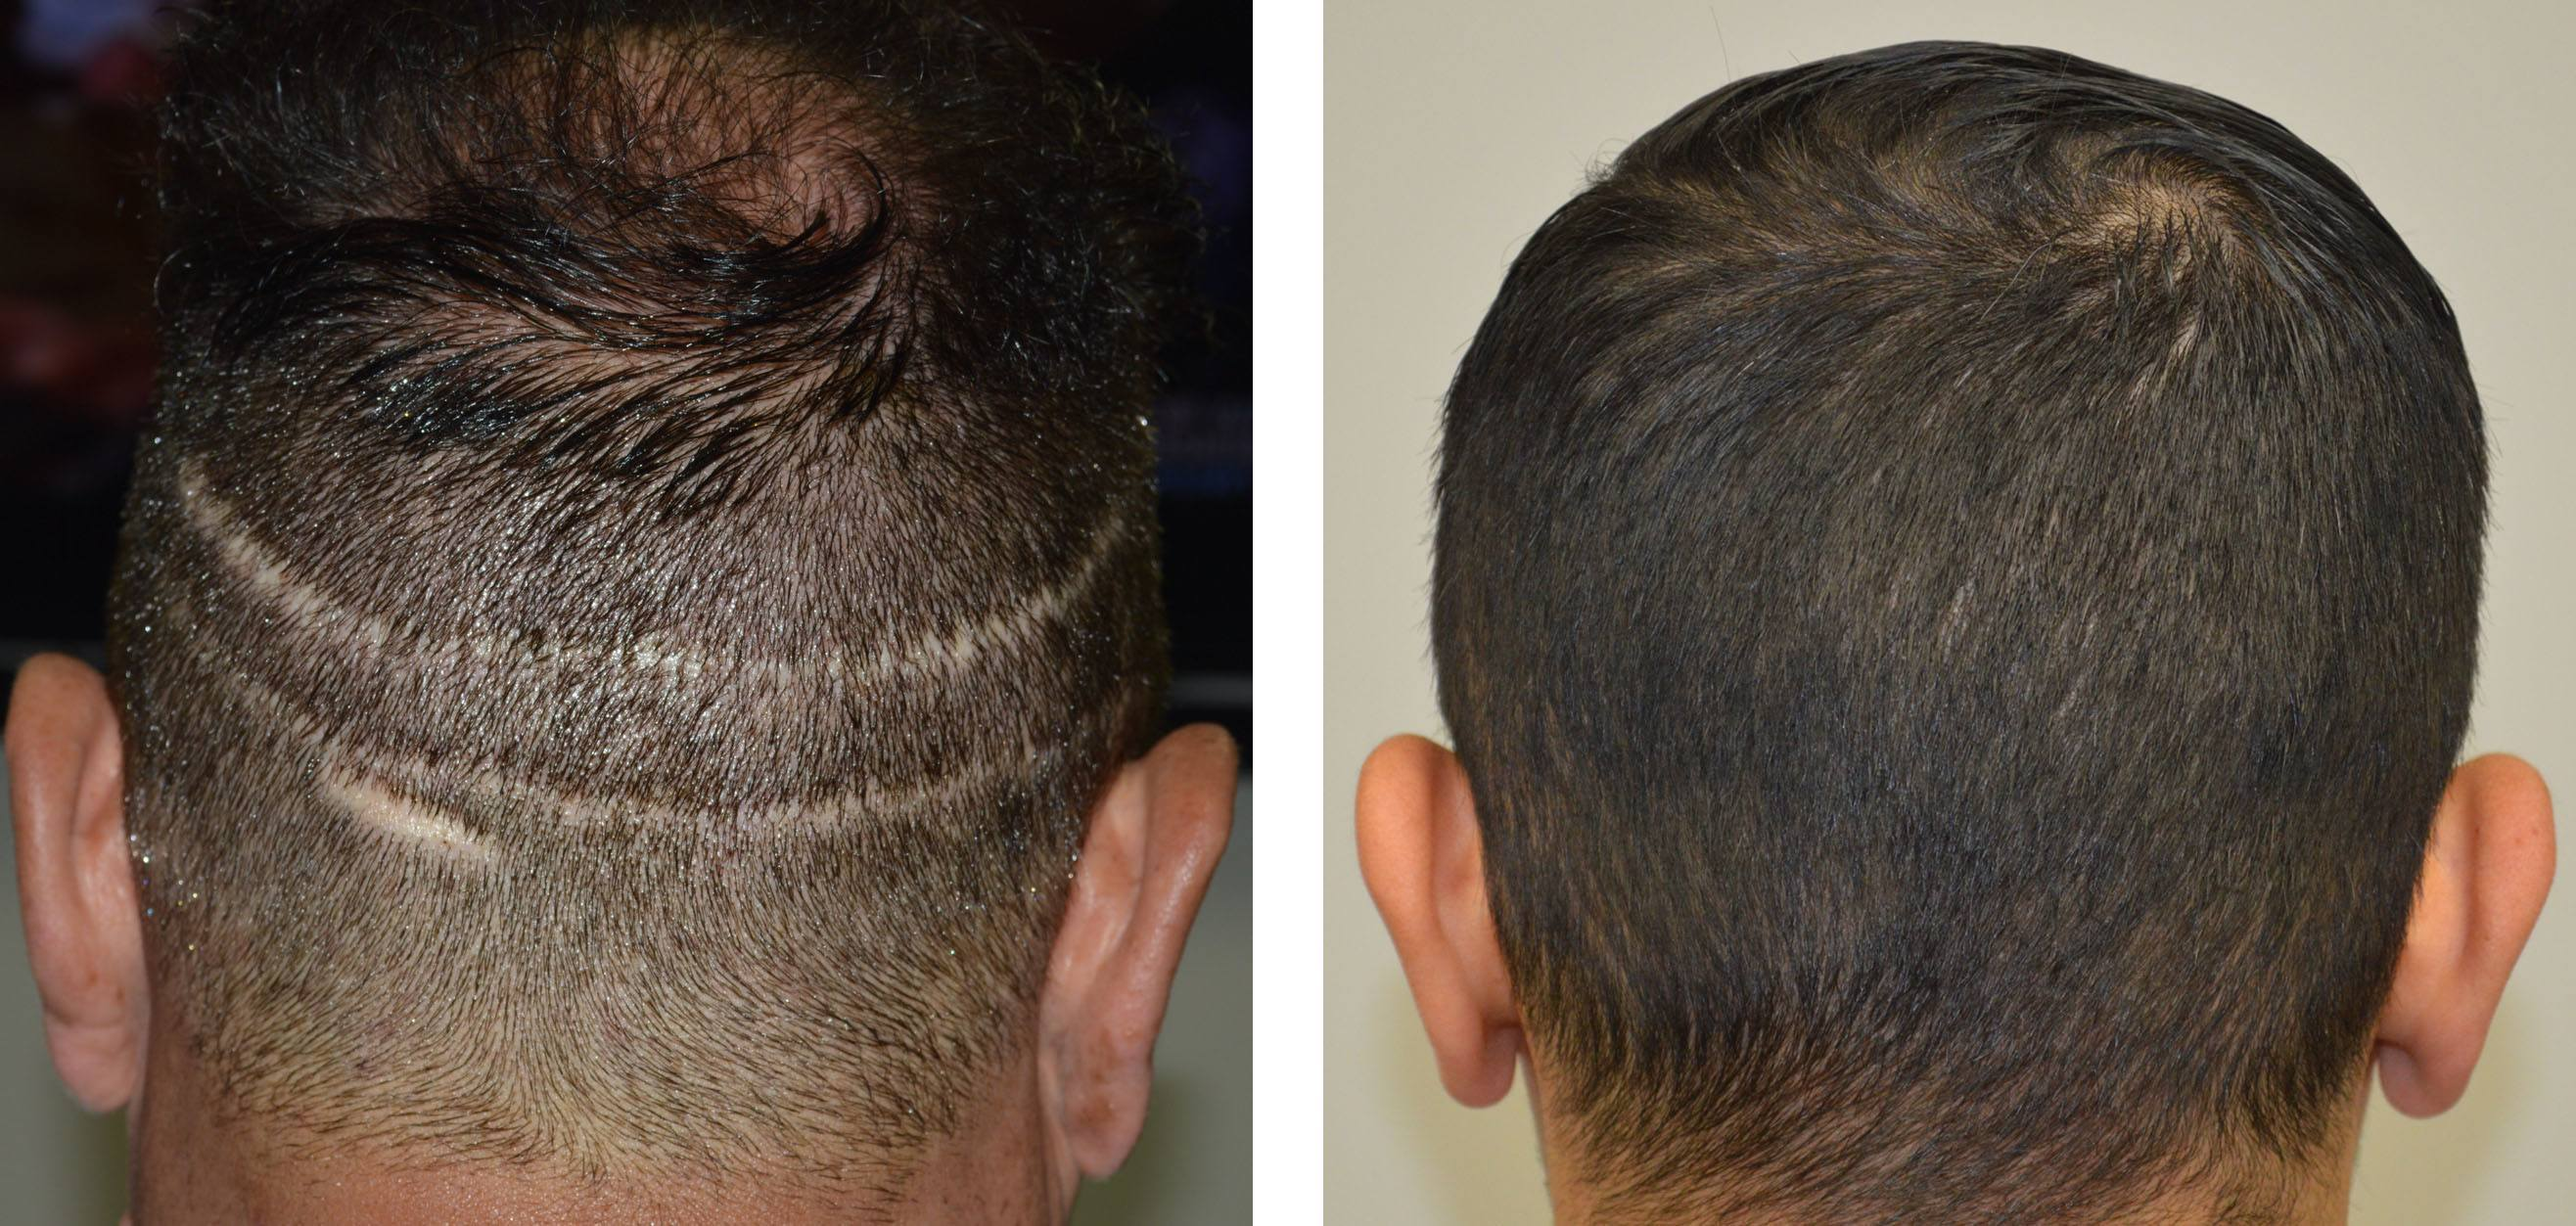 FUE vs Strip Hair Transplant Donor Site